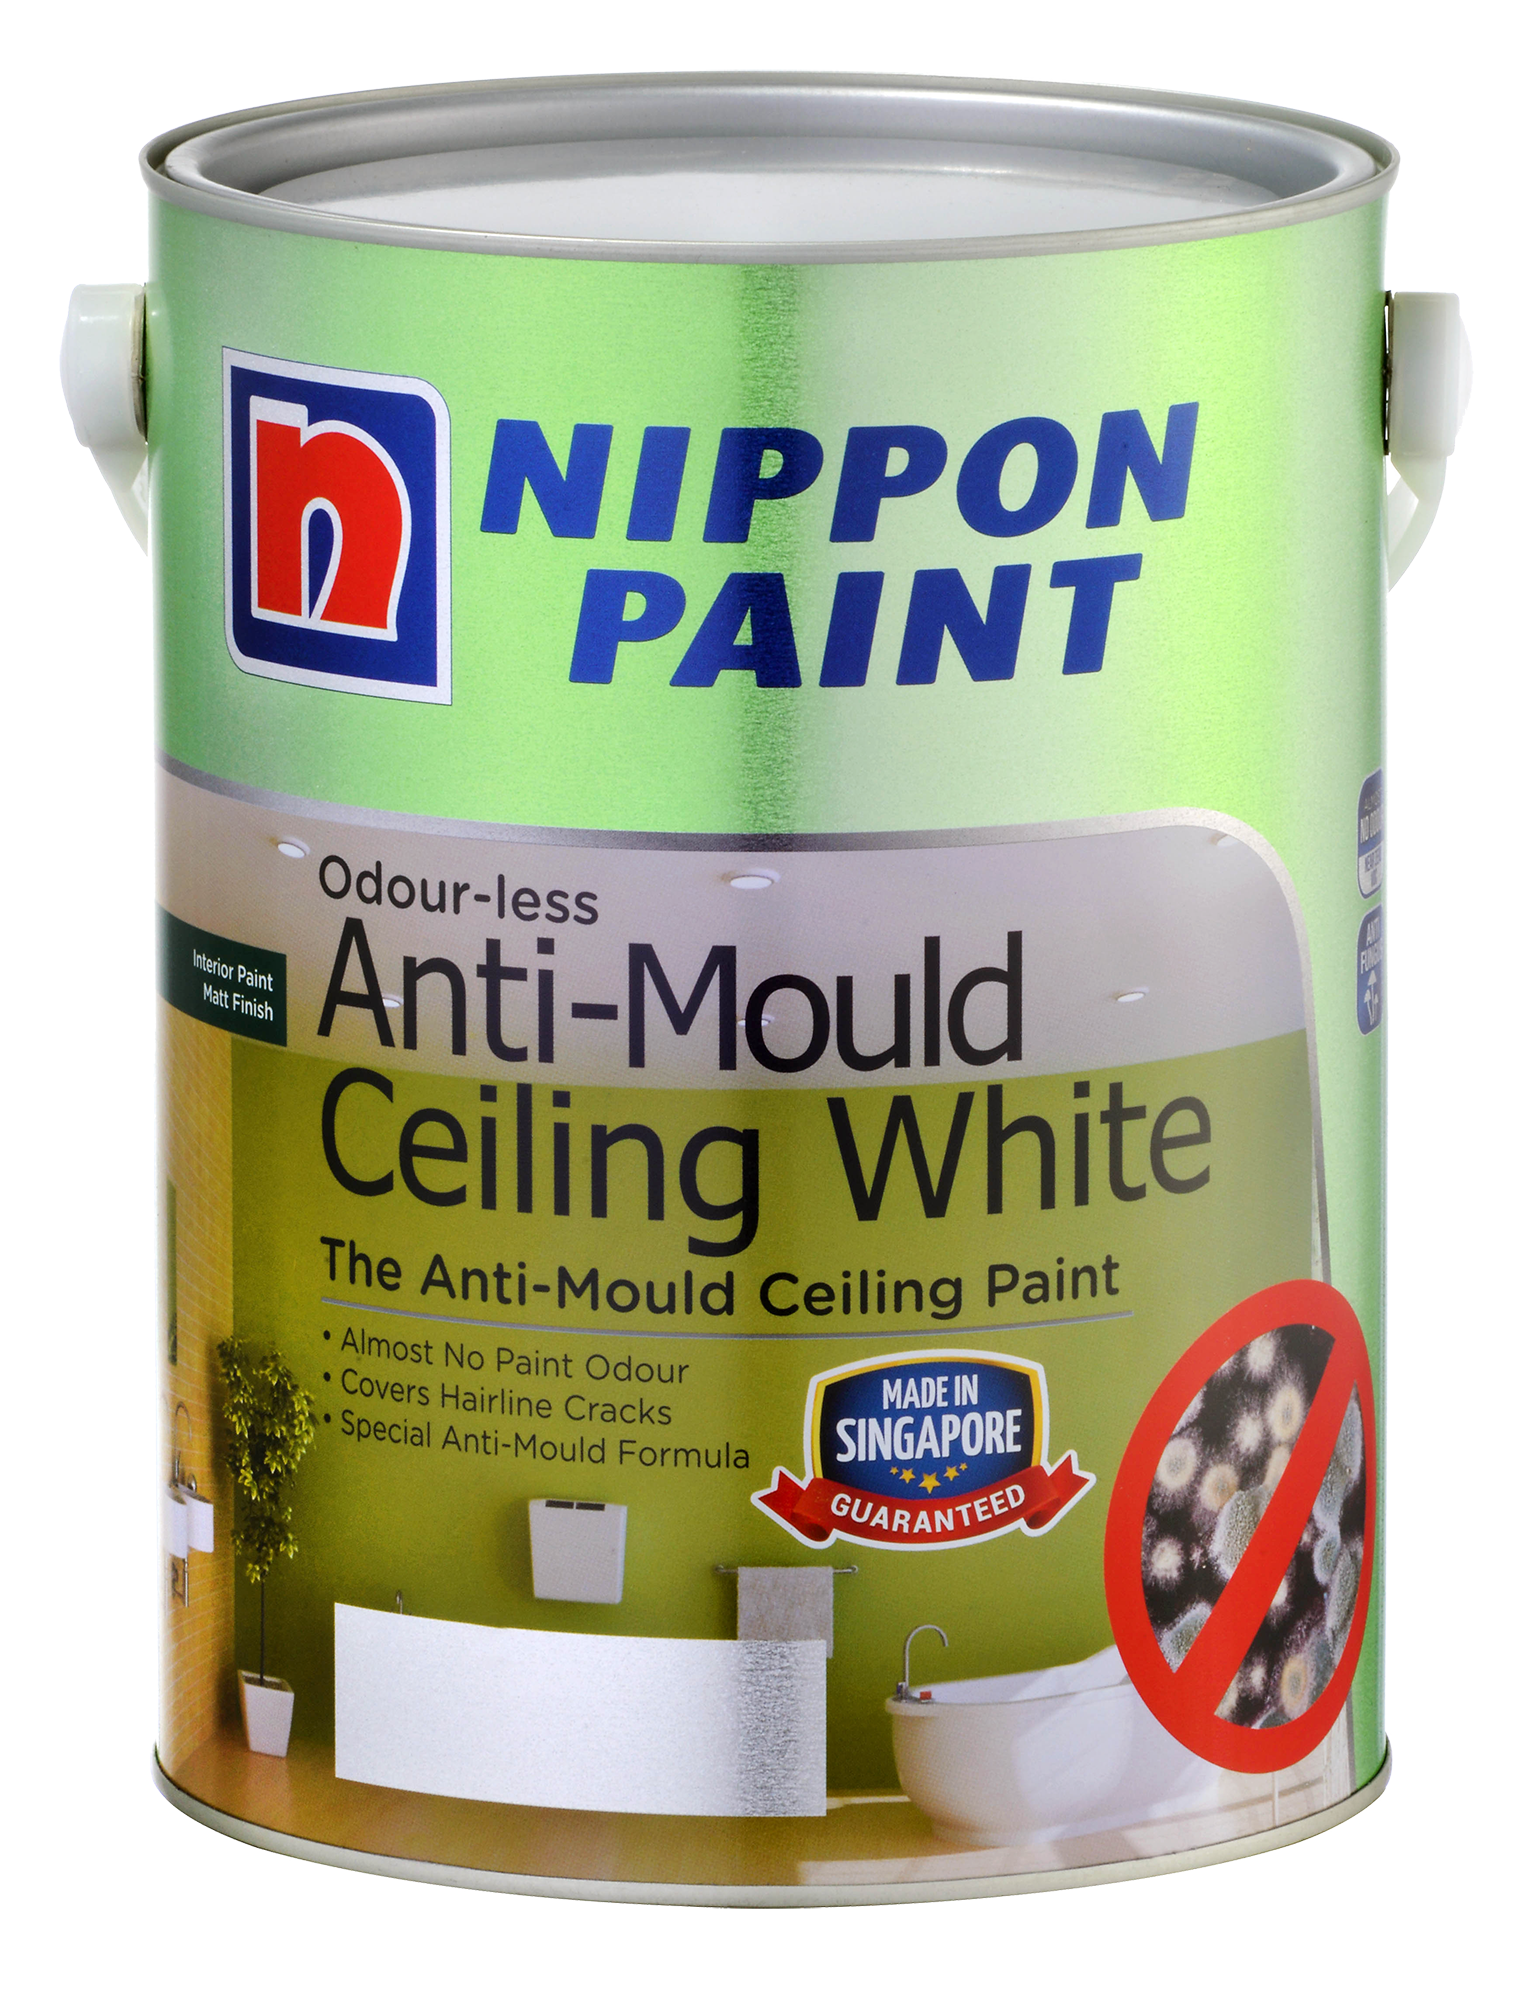 Bathroom Anti Mold Paint 28 Images Anti Mold Bathroom Paint 28 Images Bathroom Trends